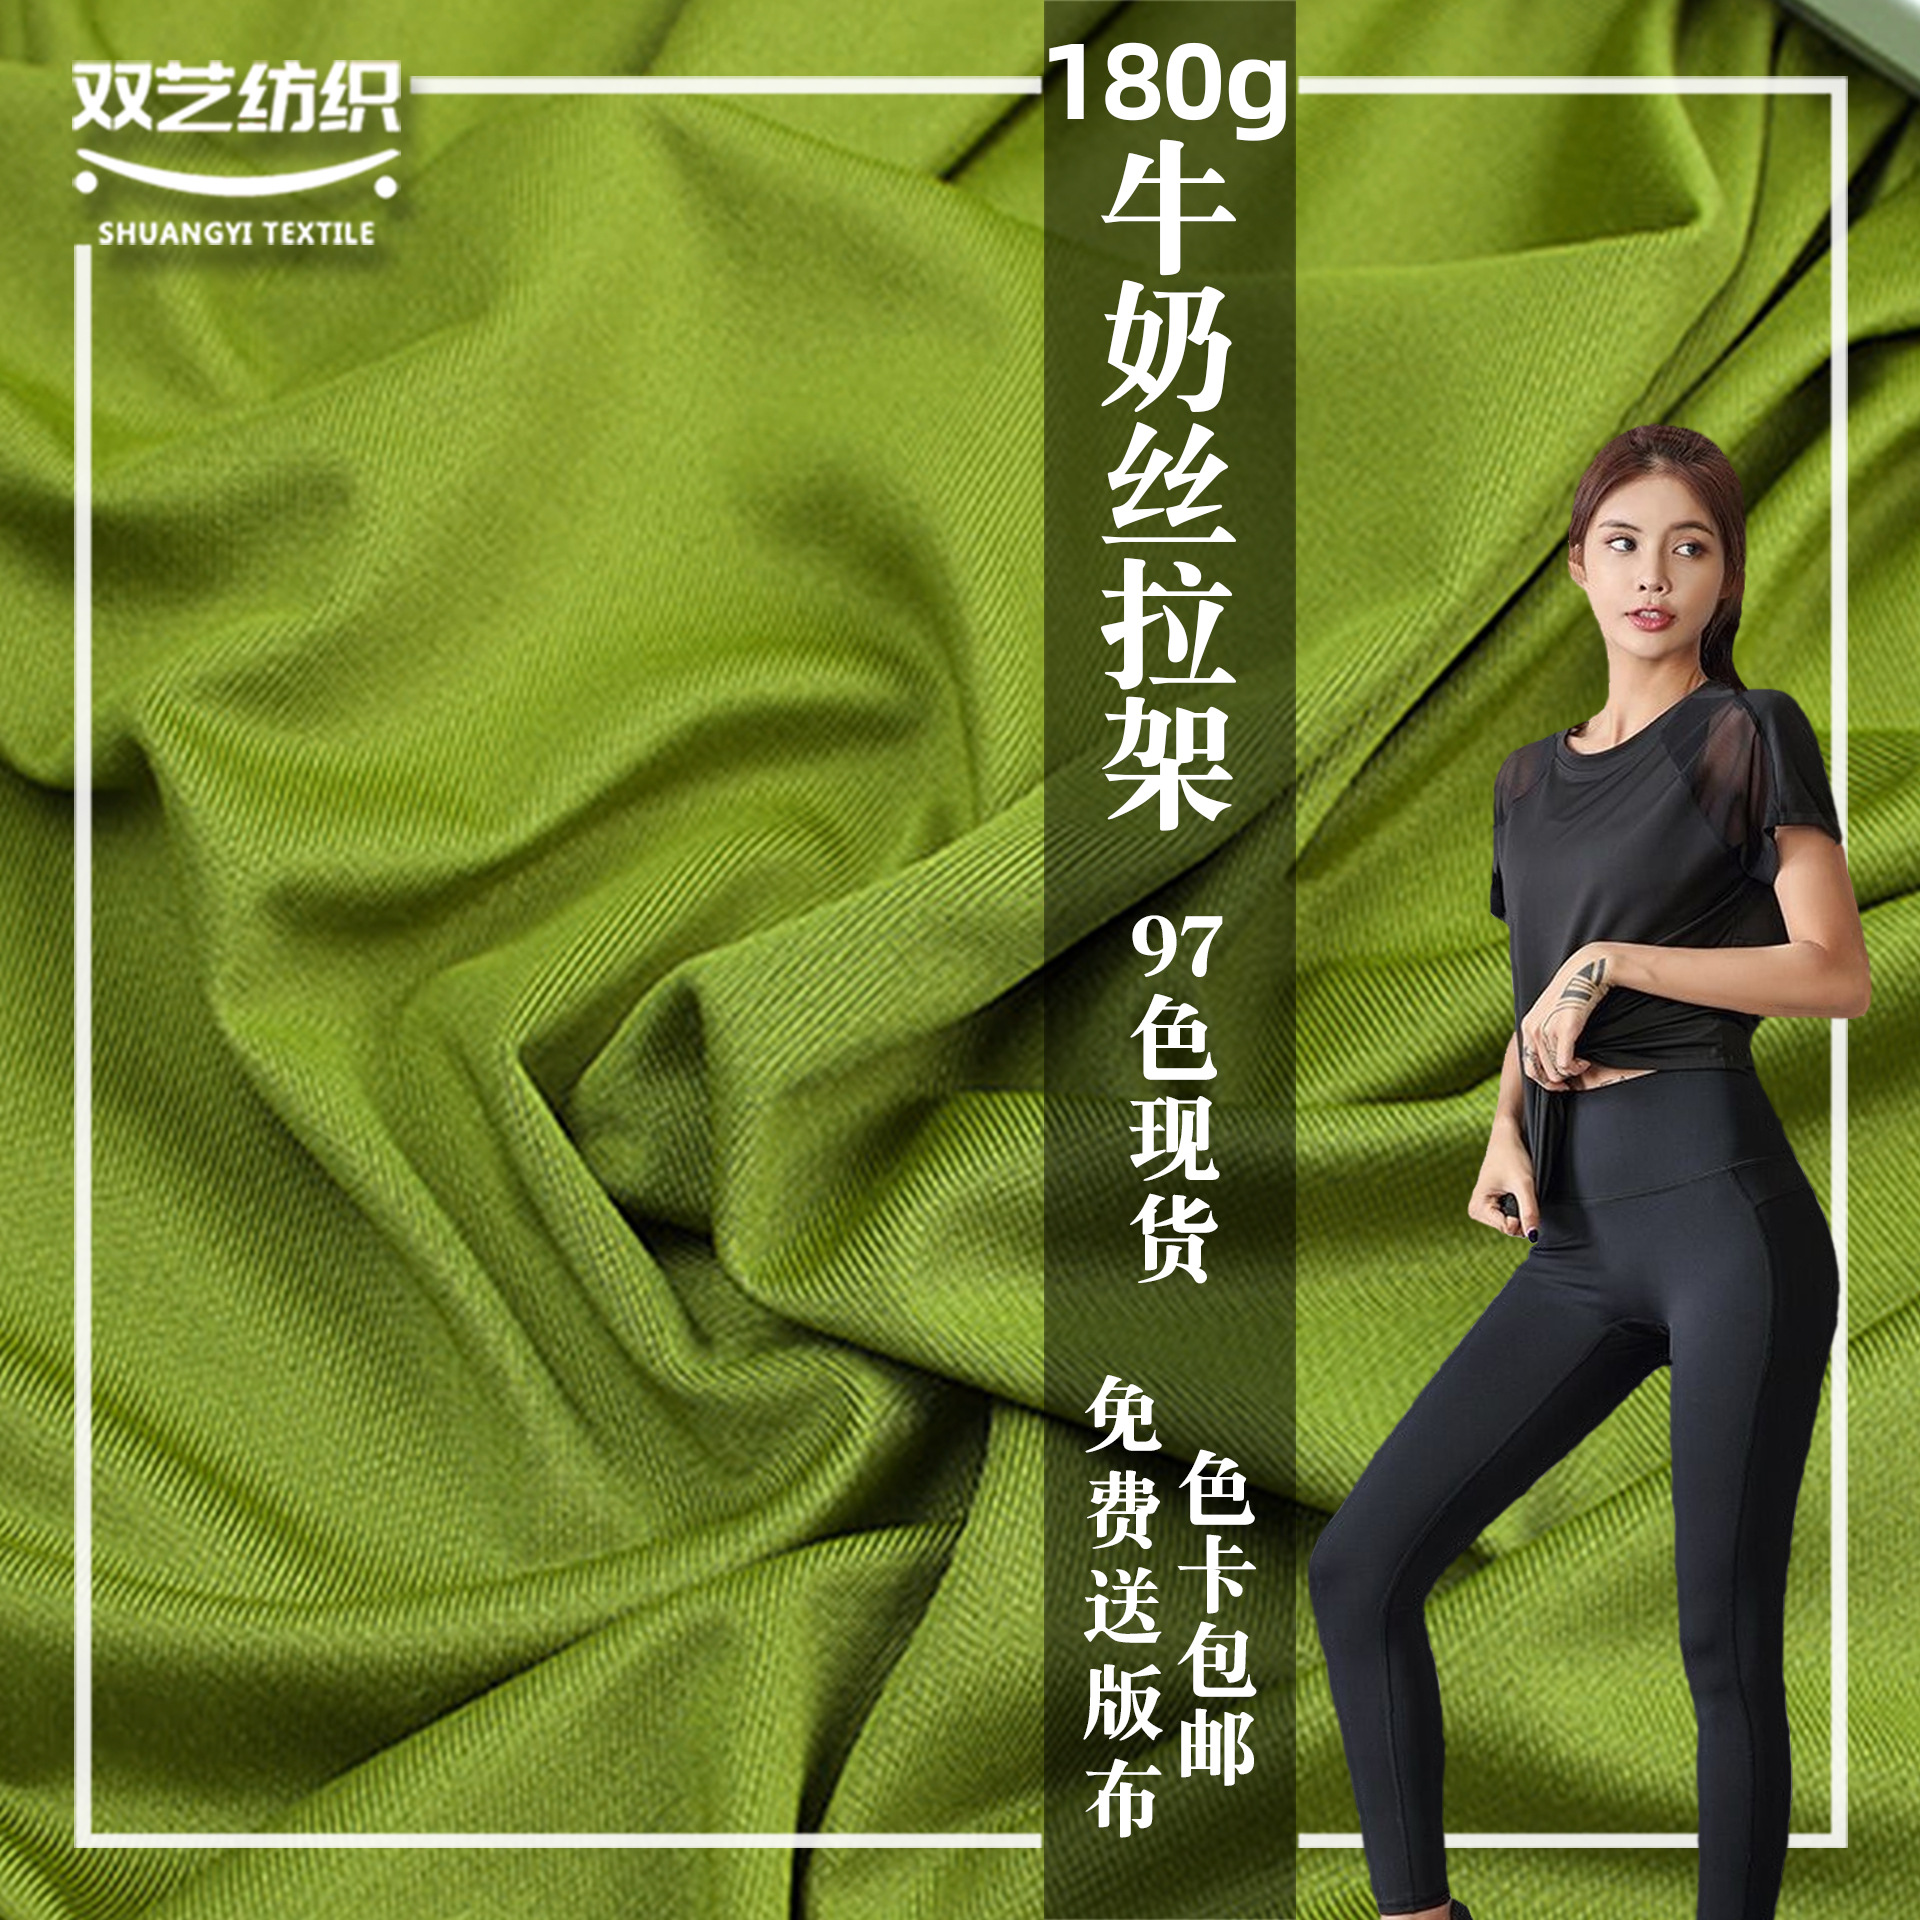 100D high-quality milk silk pull frame 180g polyester and ammonia four-way stretch jersey T-shirt sp